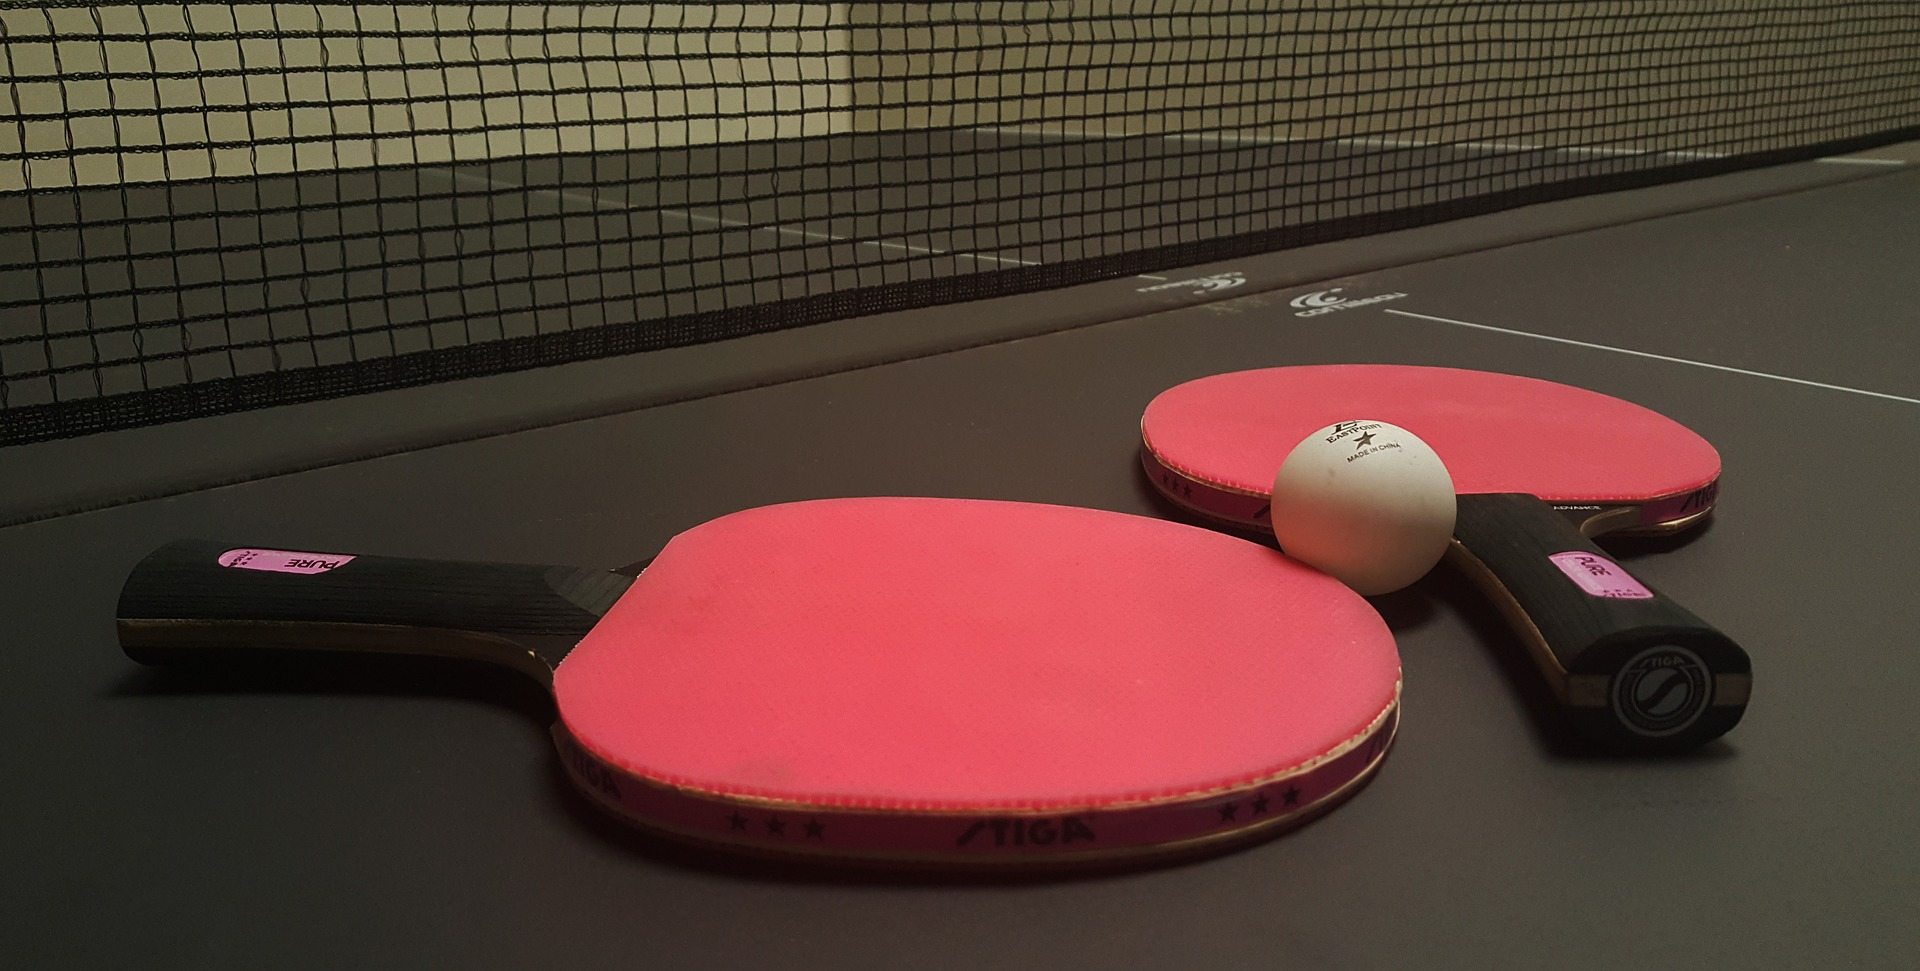 The best Ping Pong Racket 2018-Buyer's Guide